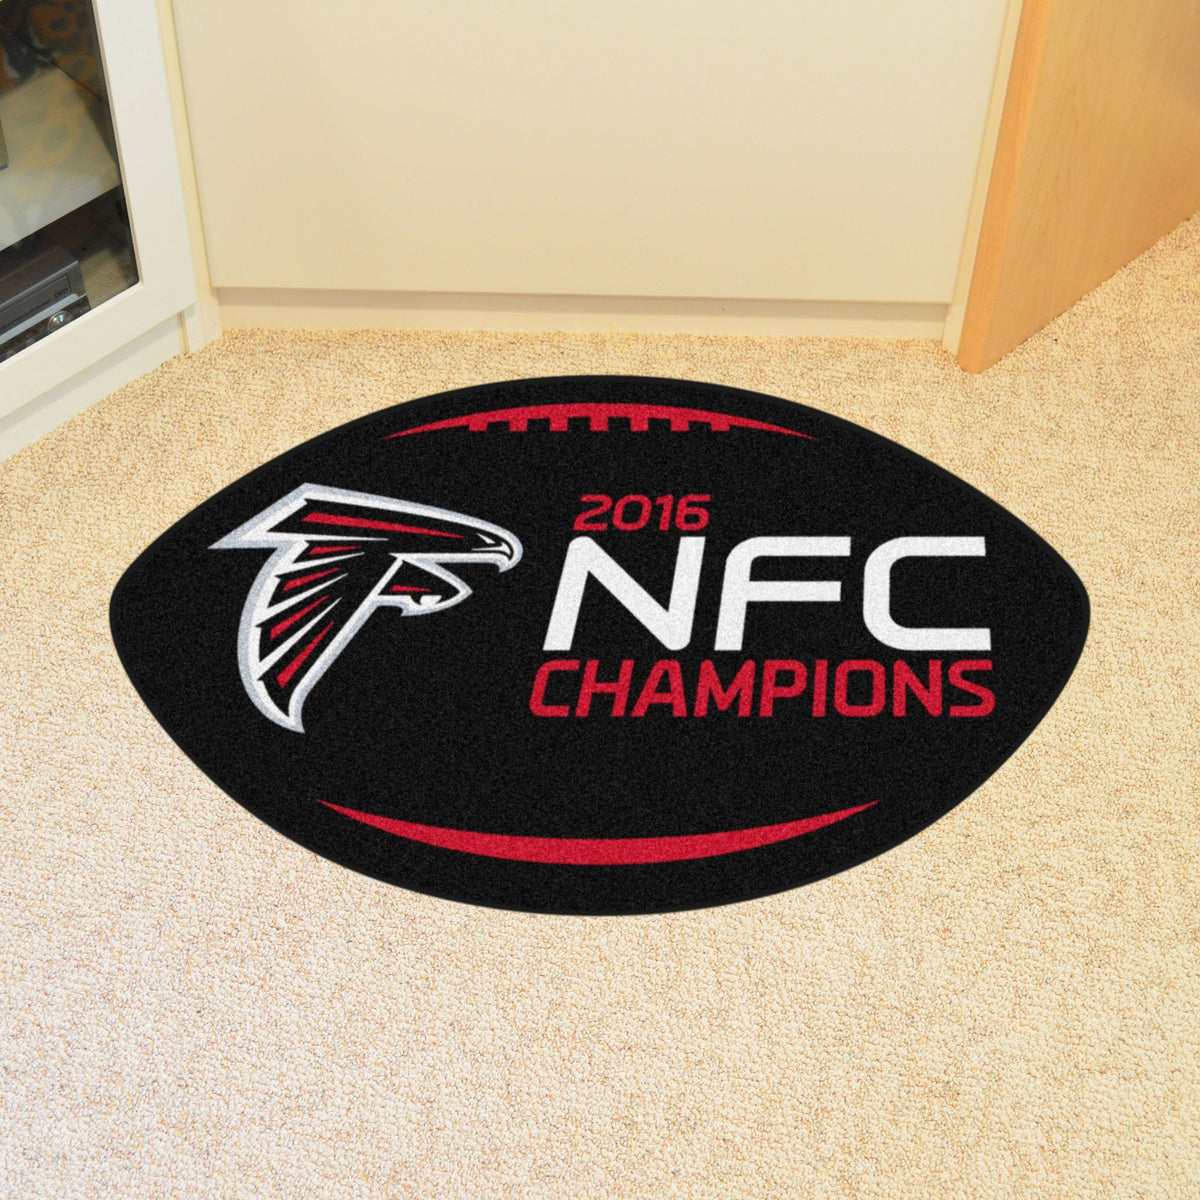 NFL - Football Mat NFL Mats, Custom Shape Rugs, Football Mat, NFL, Home Fan Mats Atlanta Falcons 2